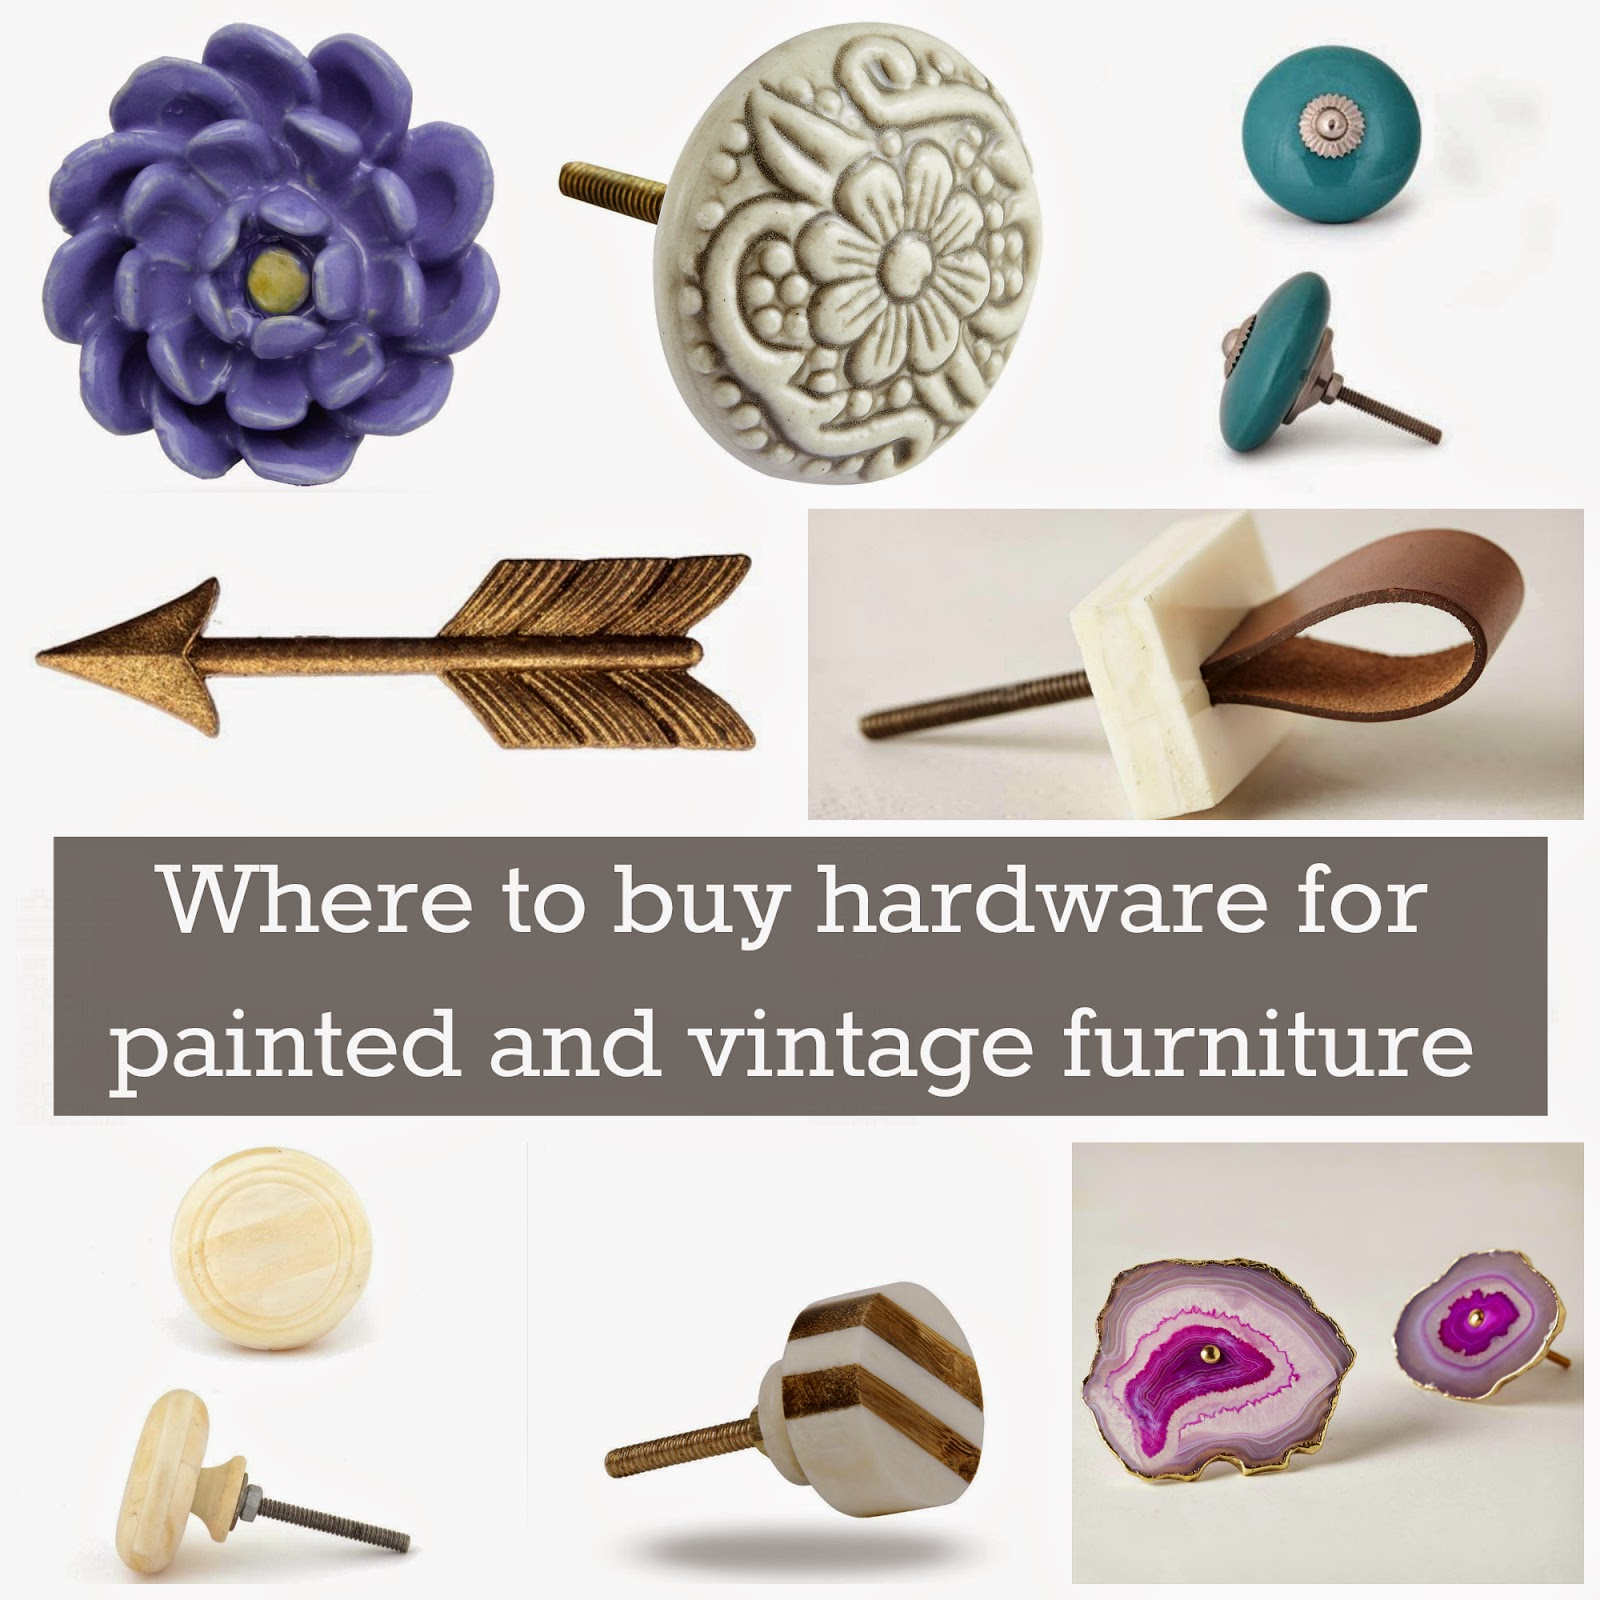 Where to Buy Hardware for Painted and Vintage Furniture The